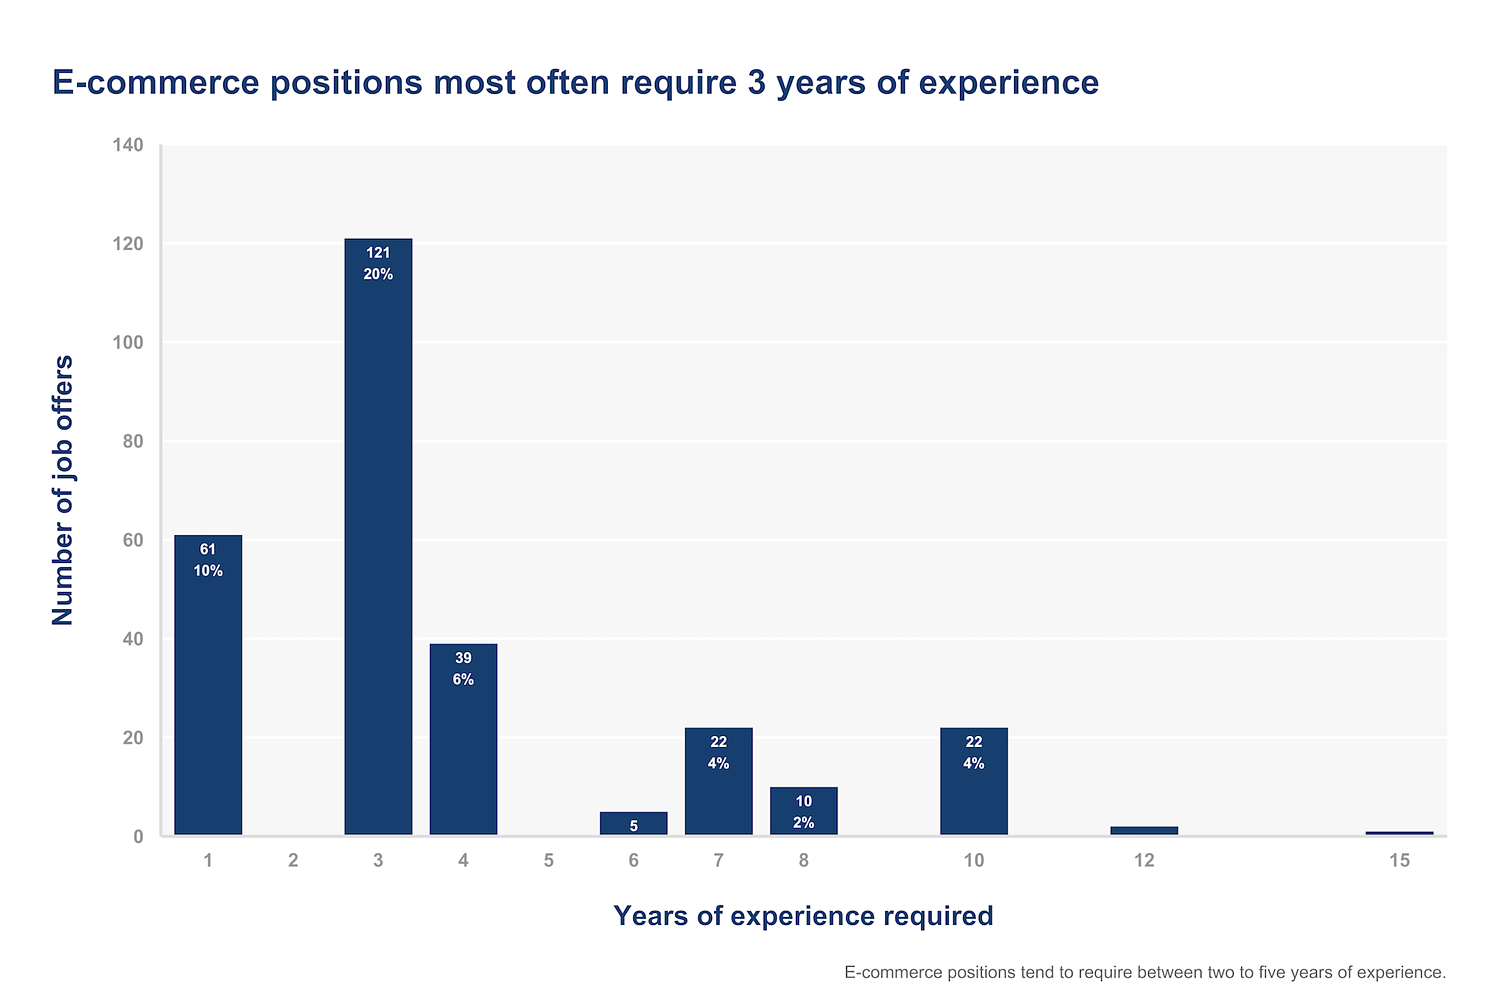 experience requirement for e-commerce positions